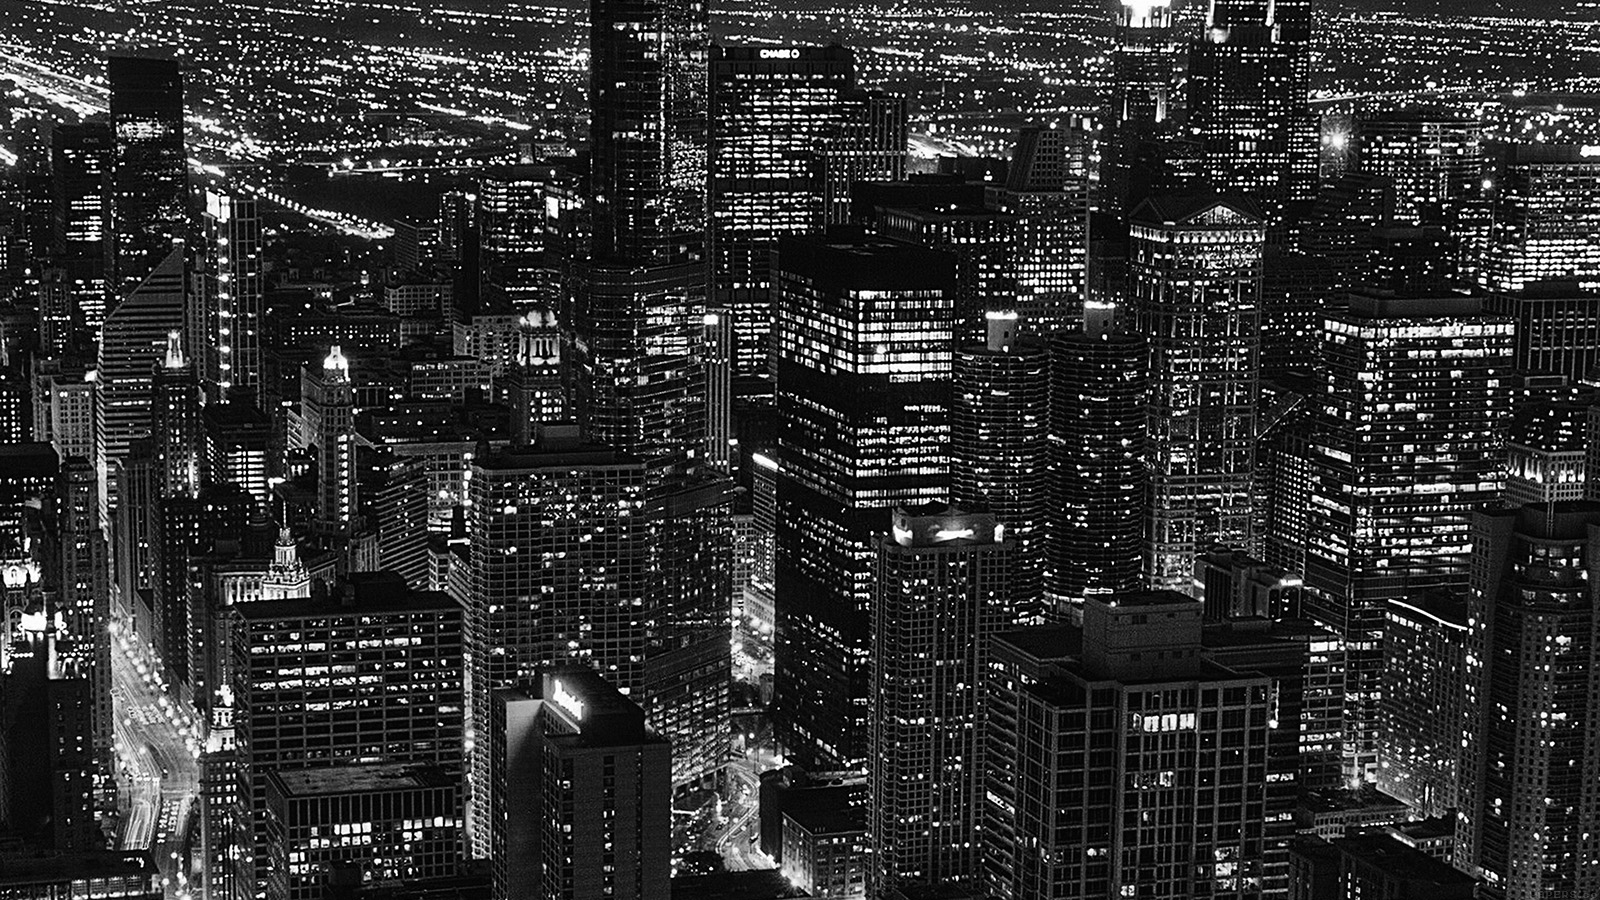 Cute Cartoon Hd Wallpapers For Android Ml84 City View Night Dark Bw Wallpaper